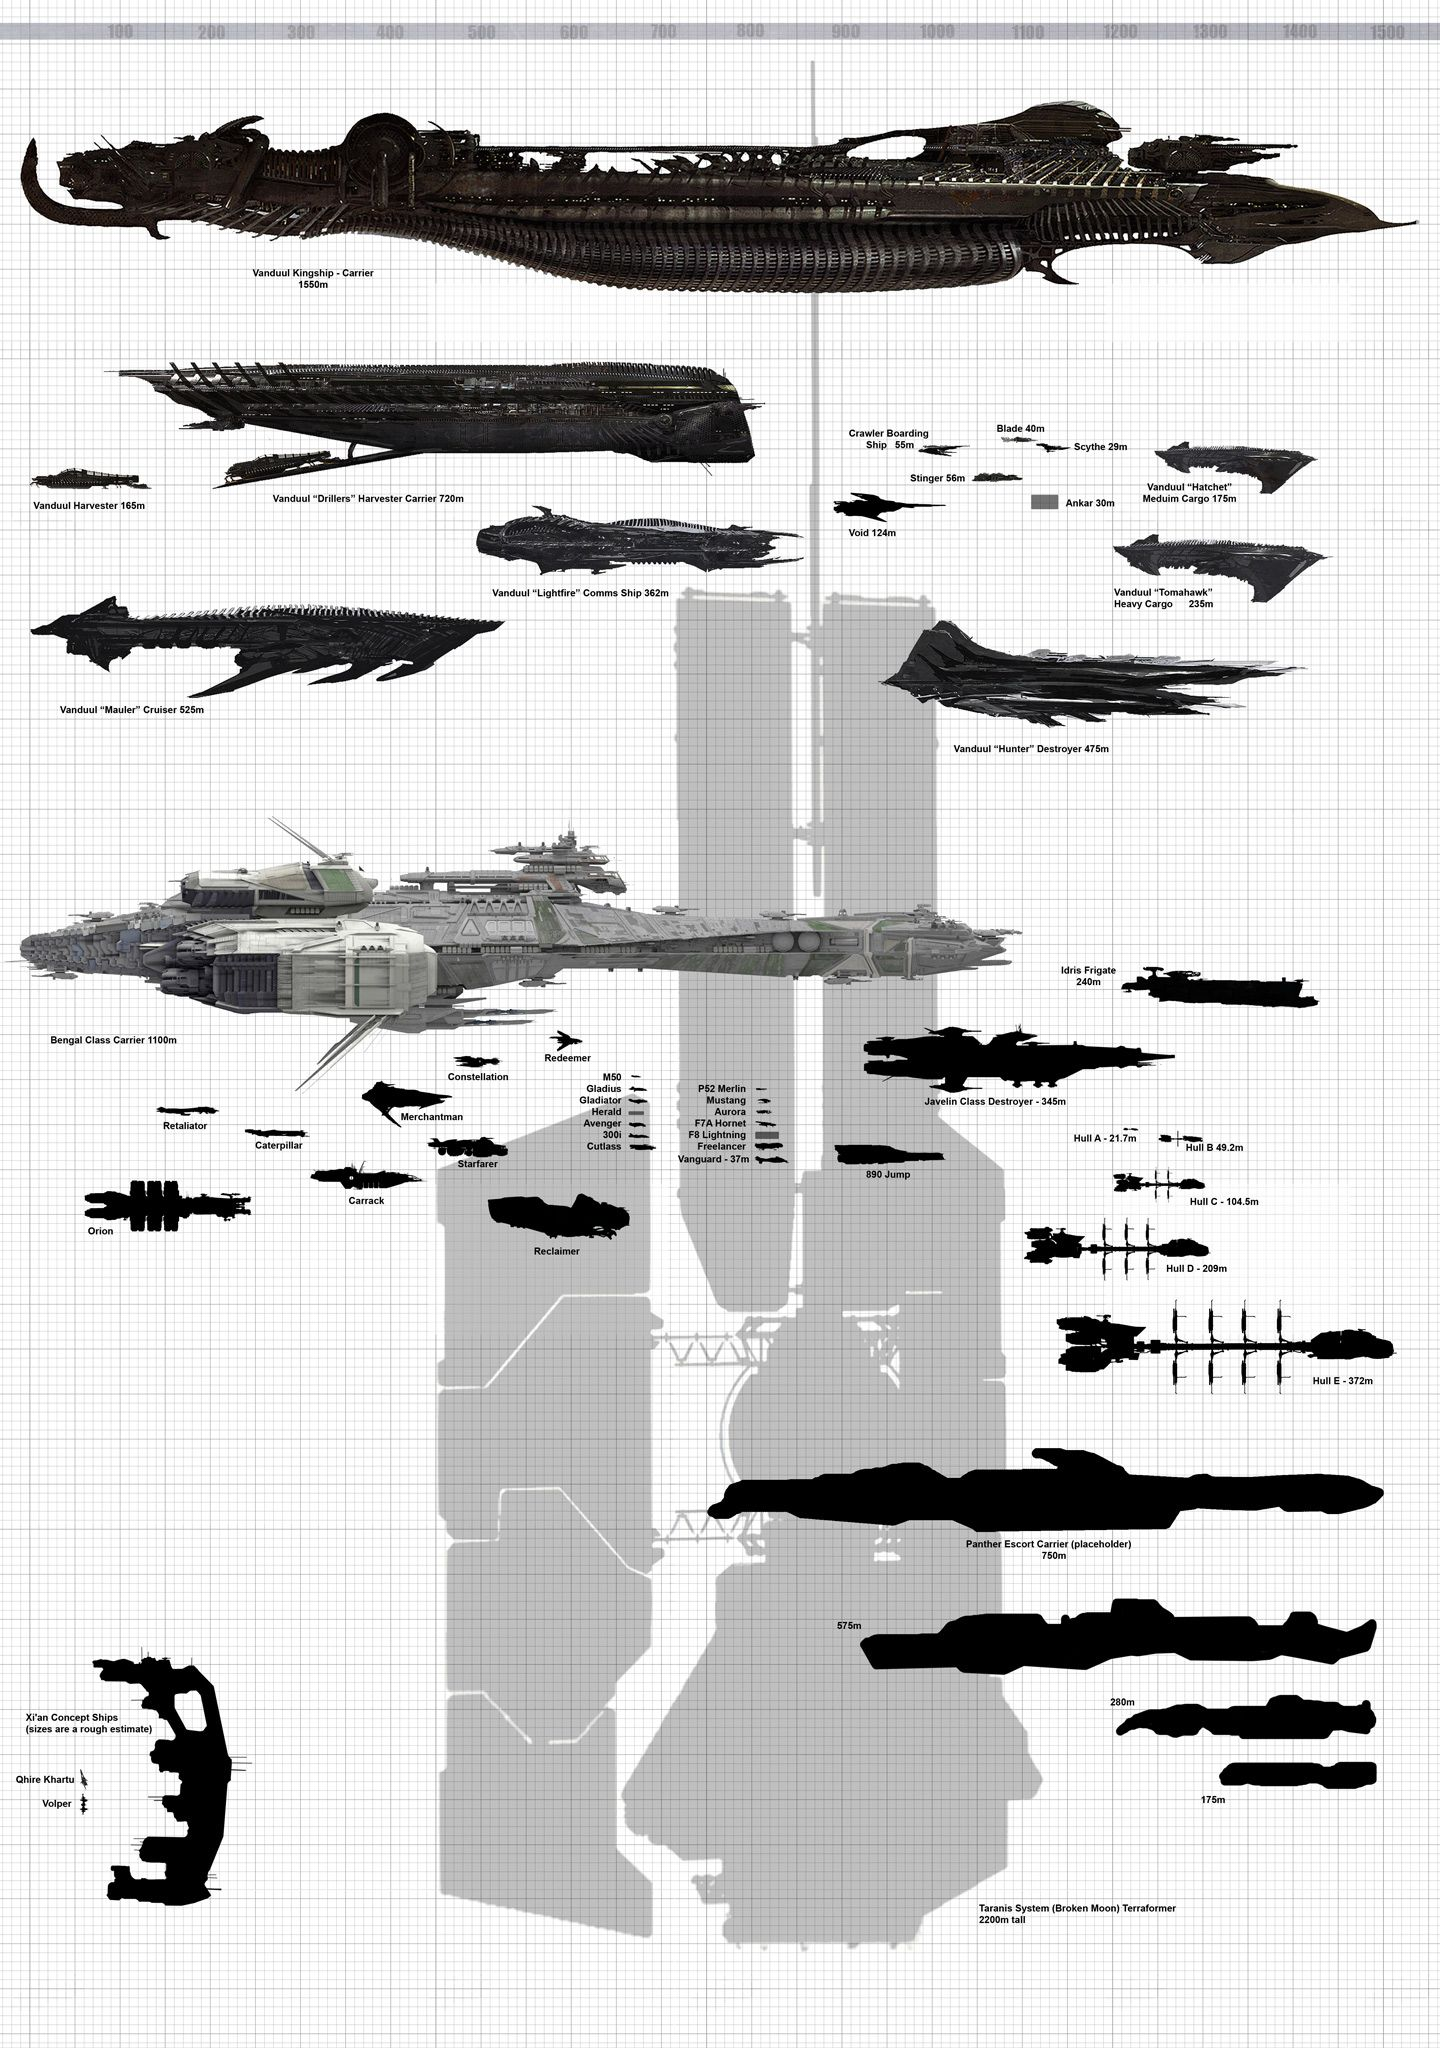 star citizen ship size comparison chart - photo #12